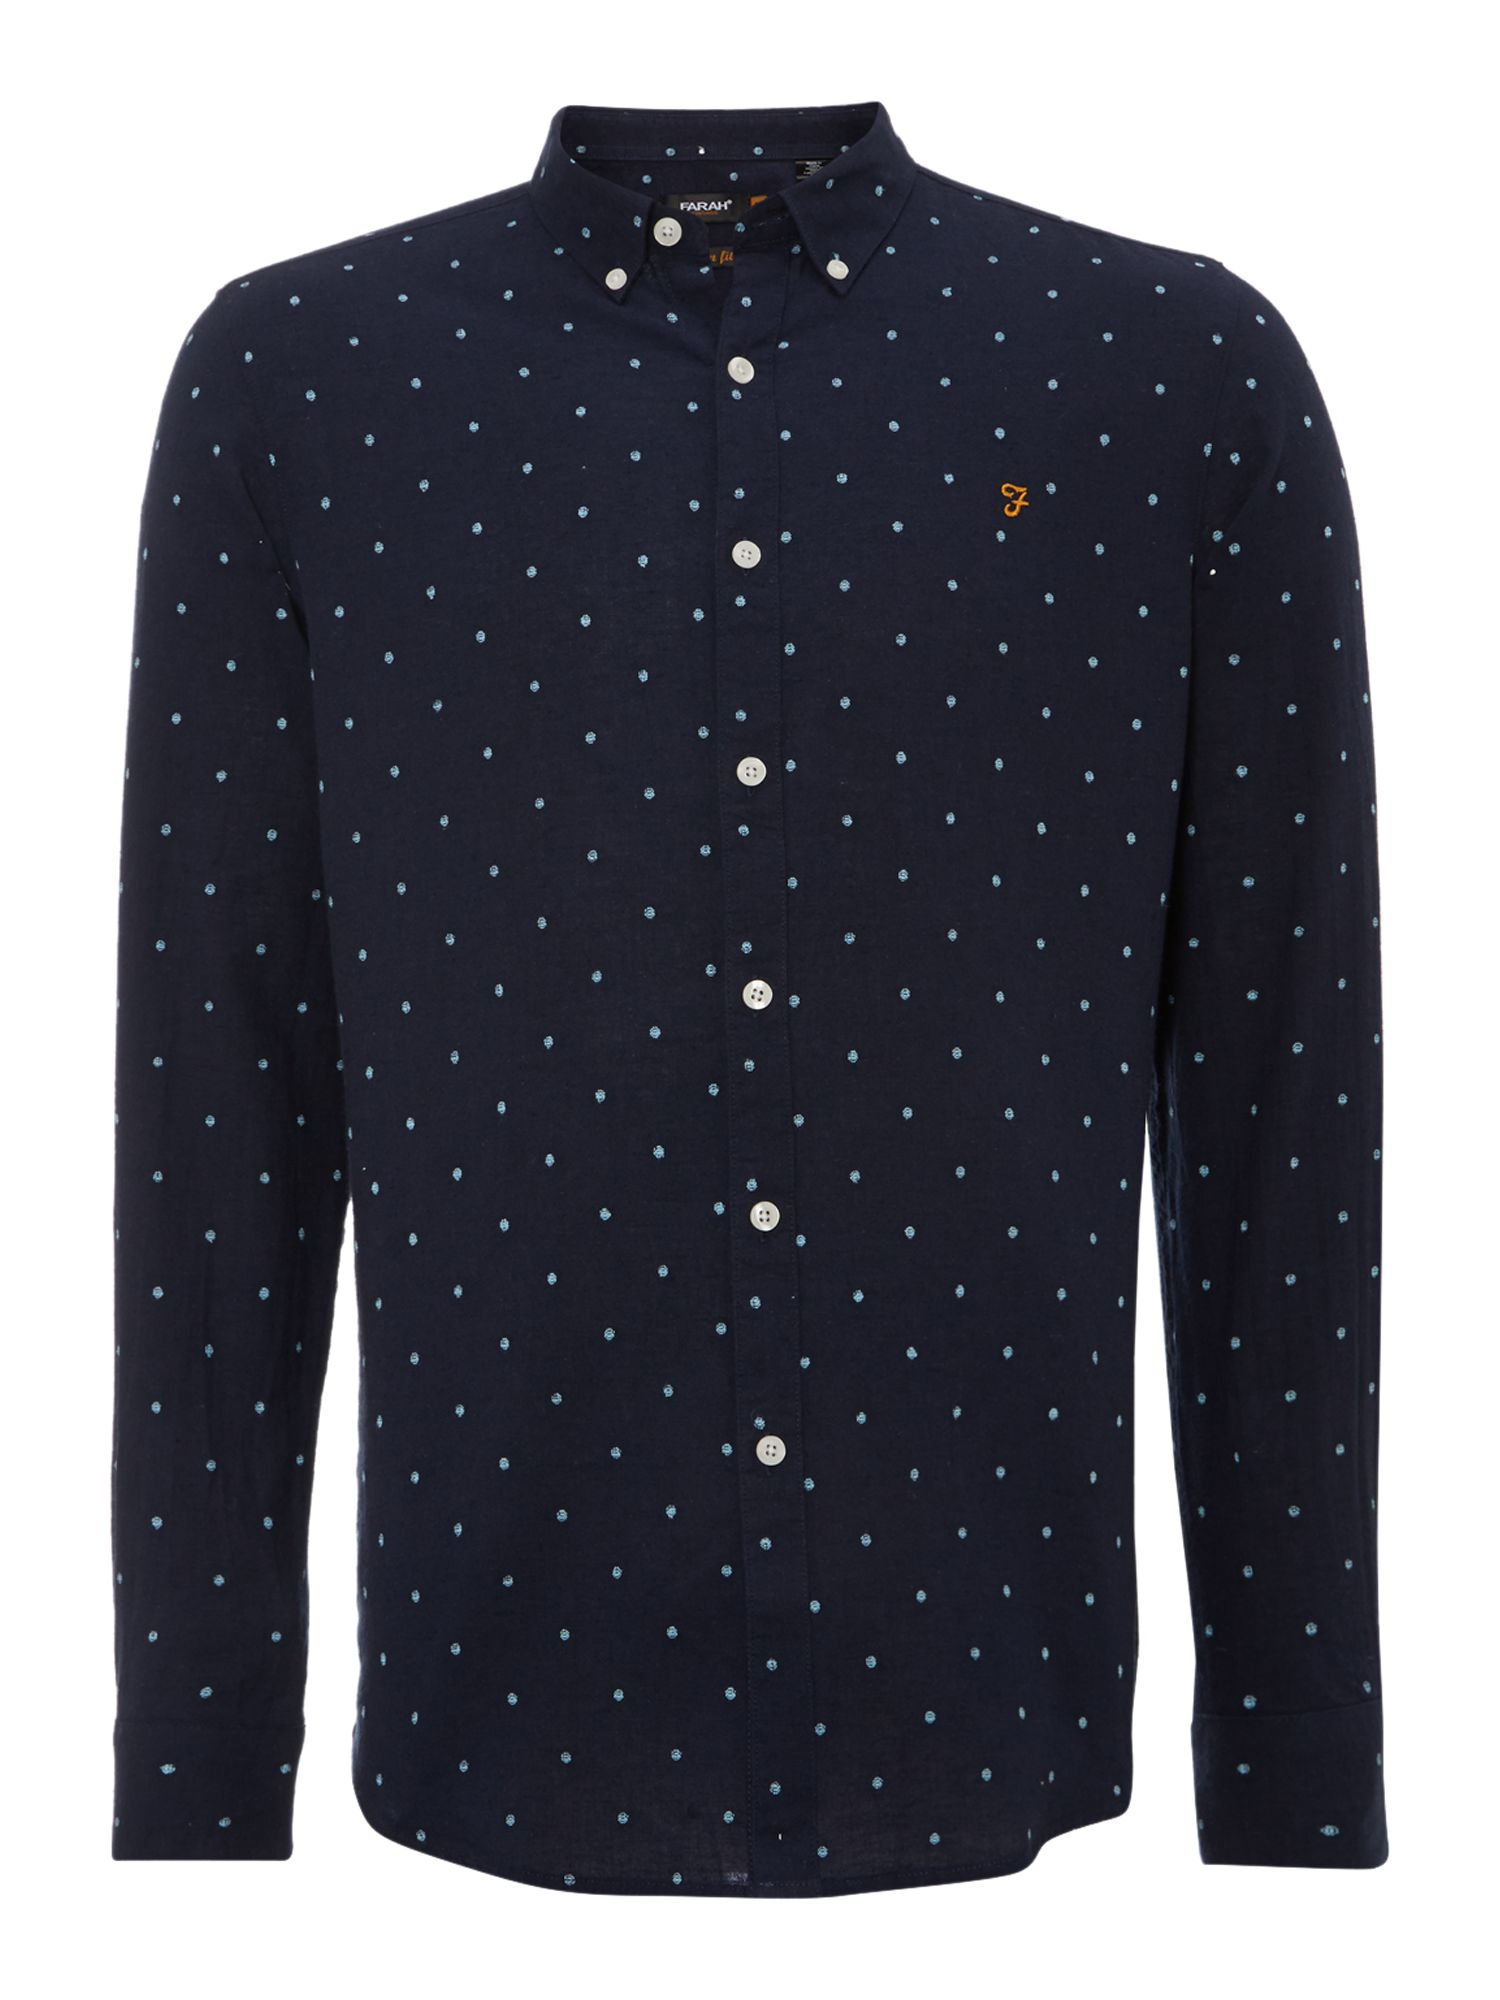 Culham dot print long sleeve print shirt